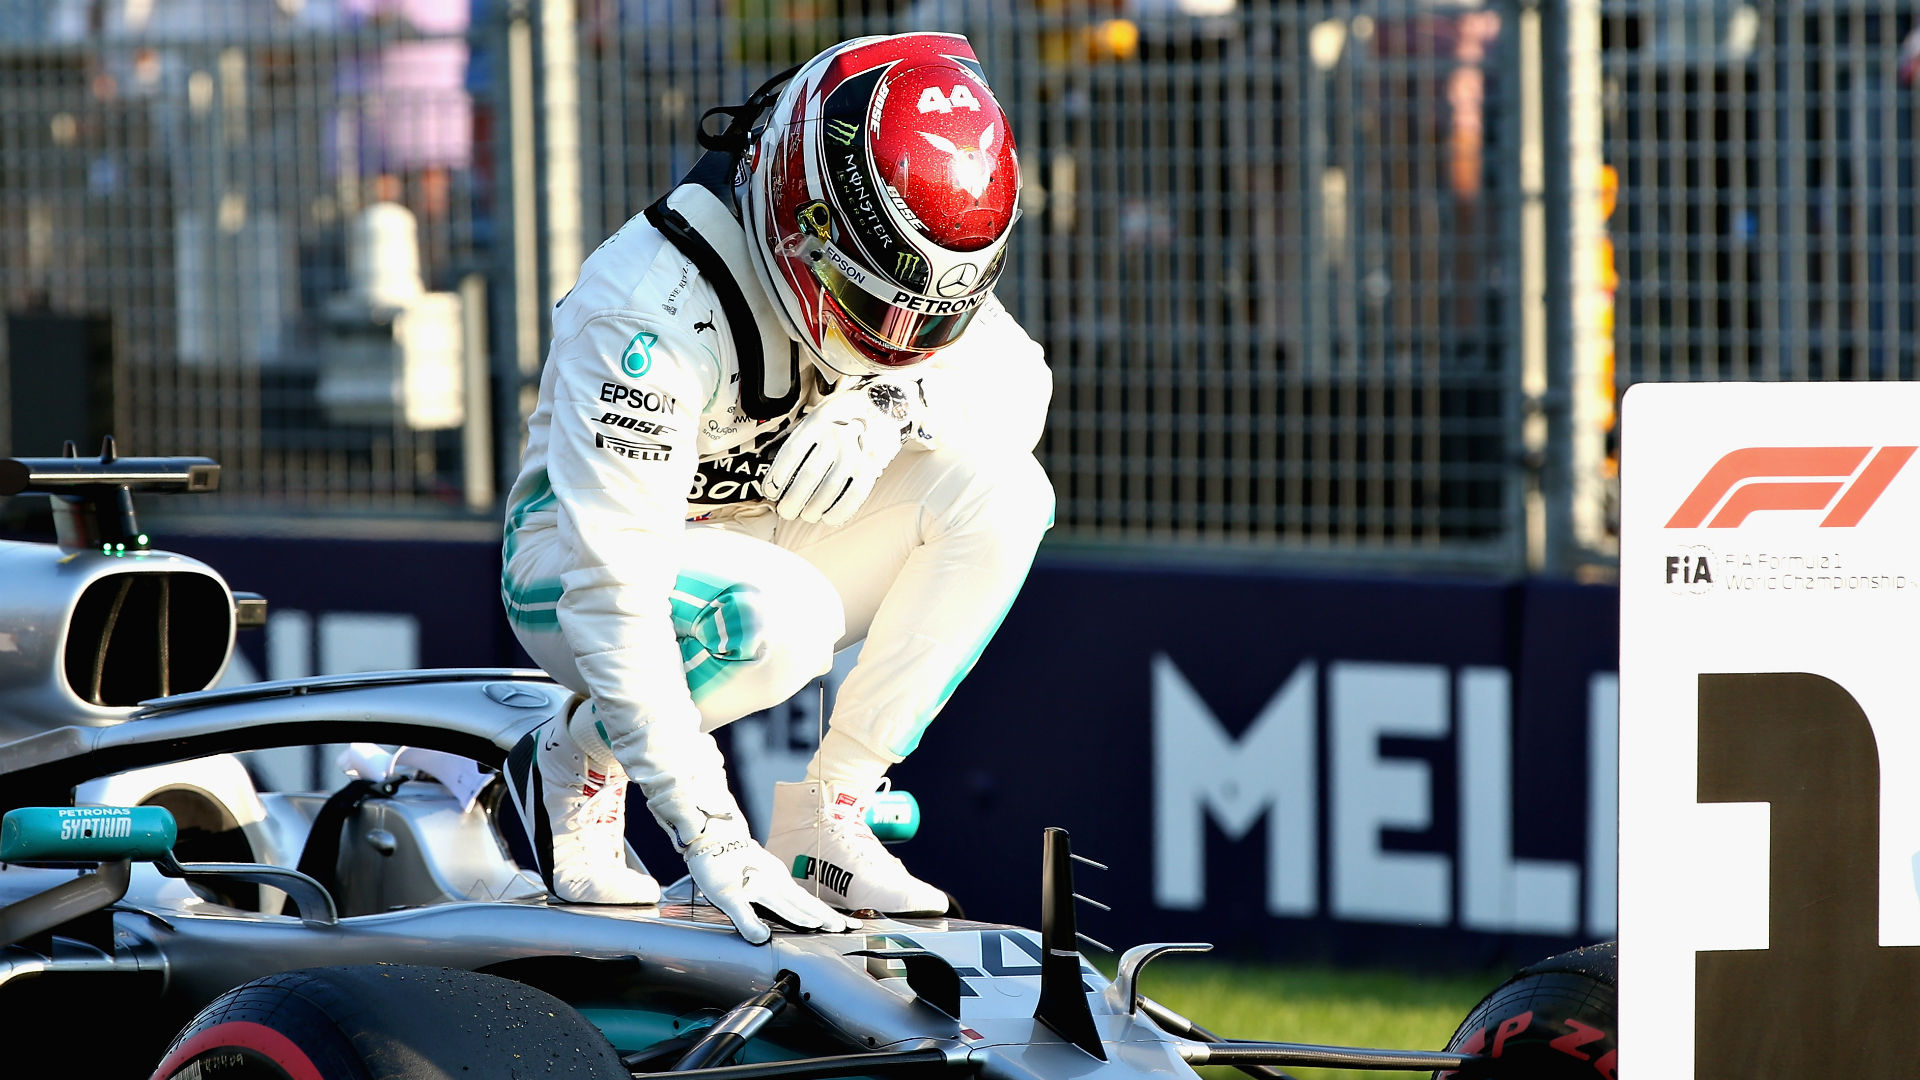 Hamilton in 'shock' after Mercedes dominate Ferrari